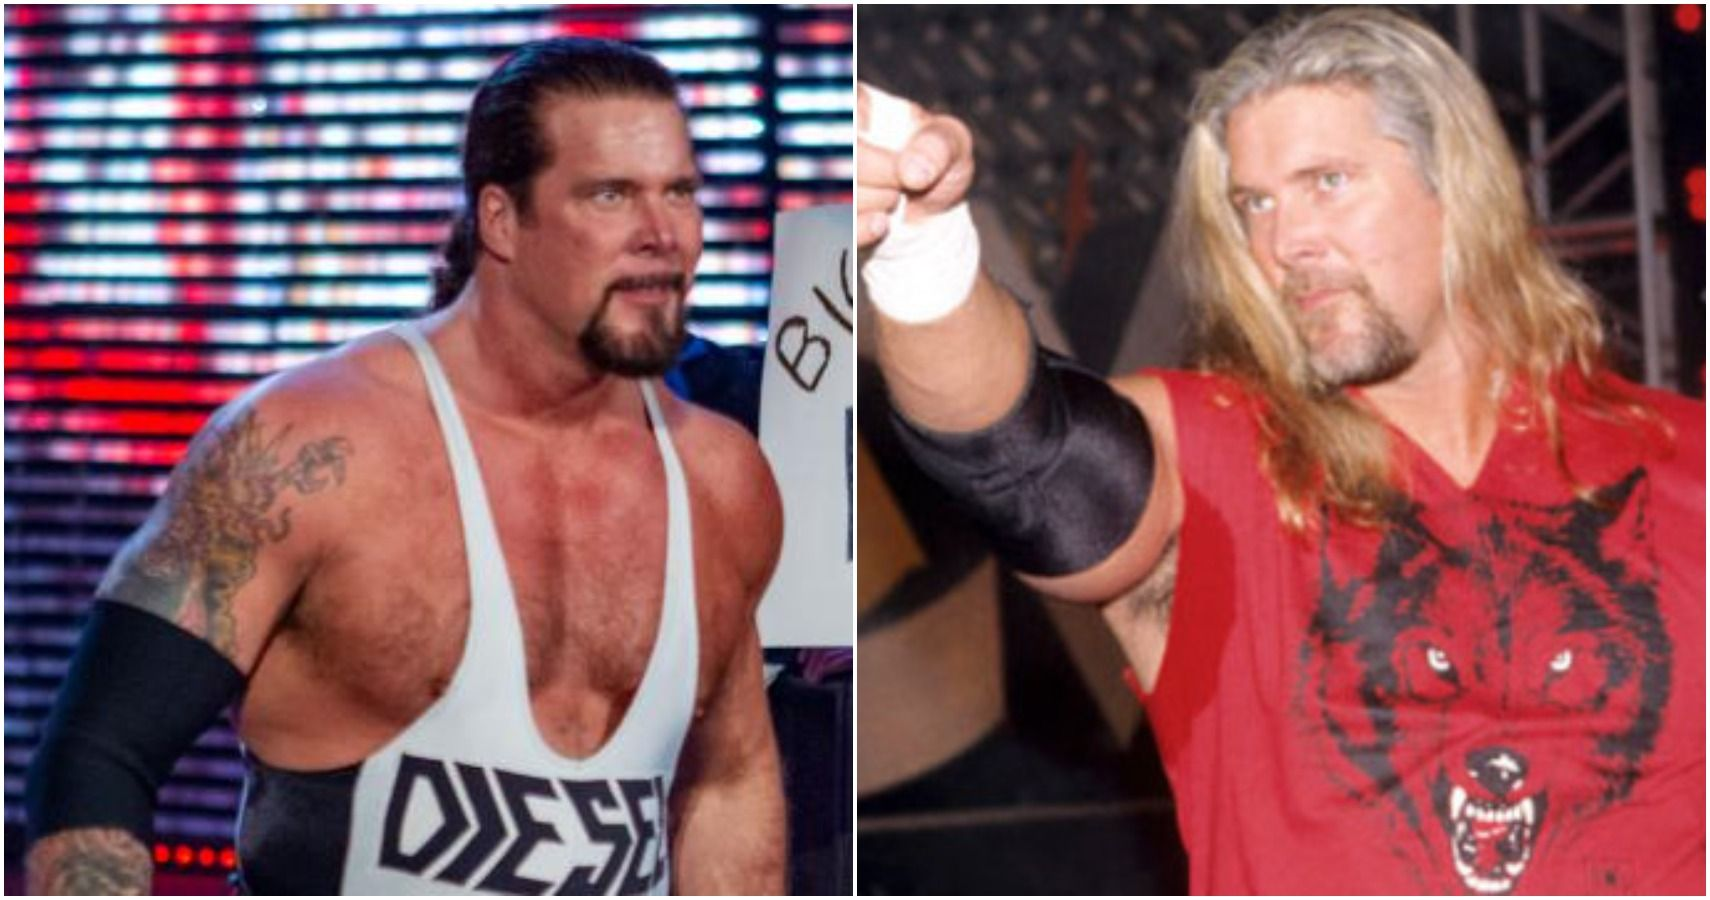 10 Ways Shawn Michaels Failed WWE | TheSportster